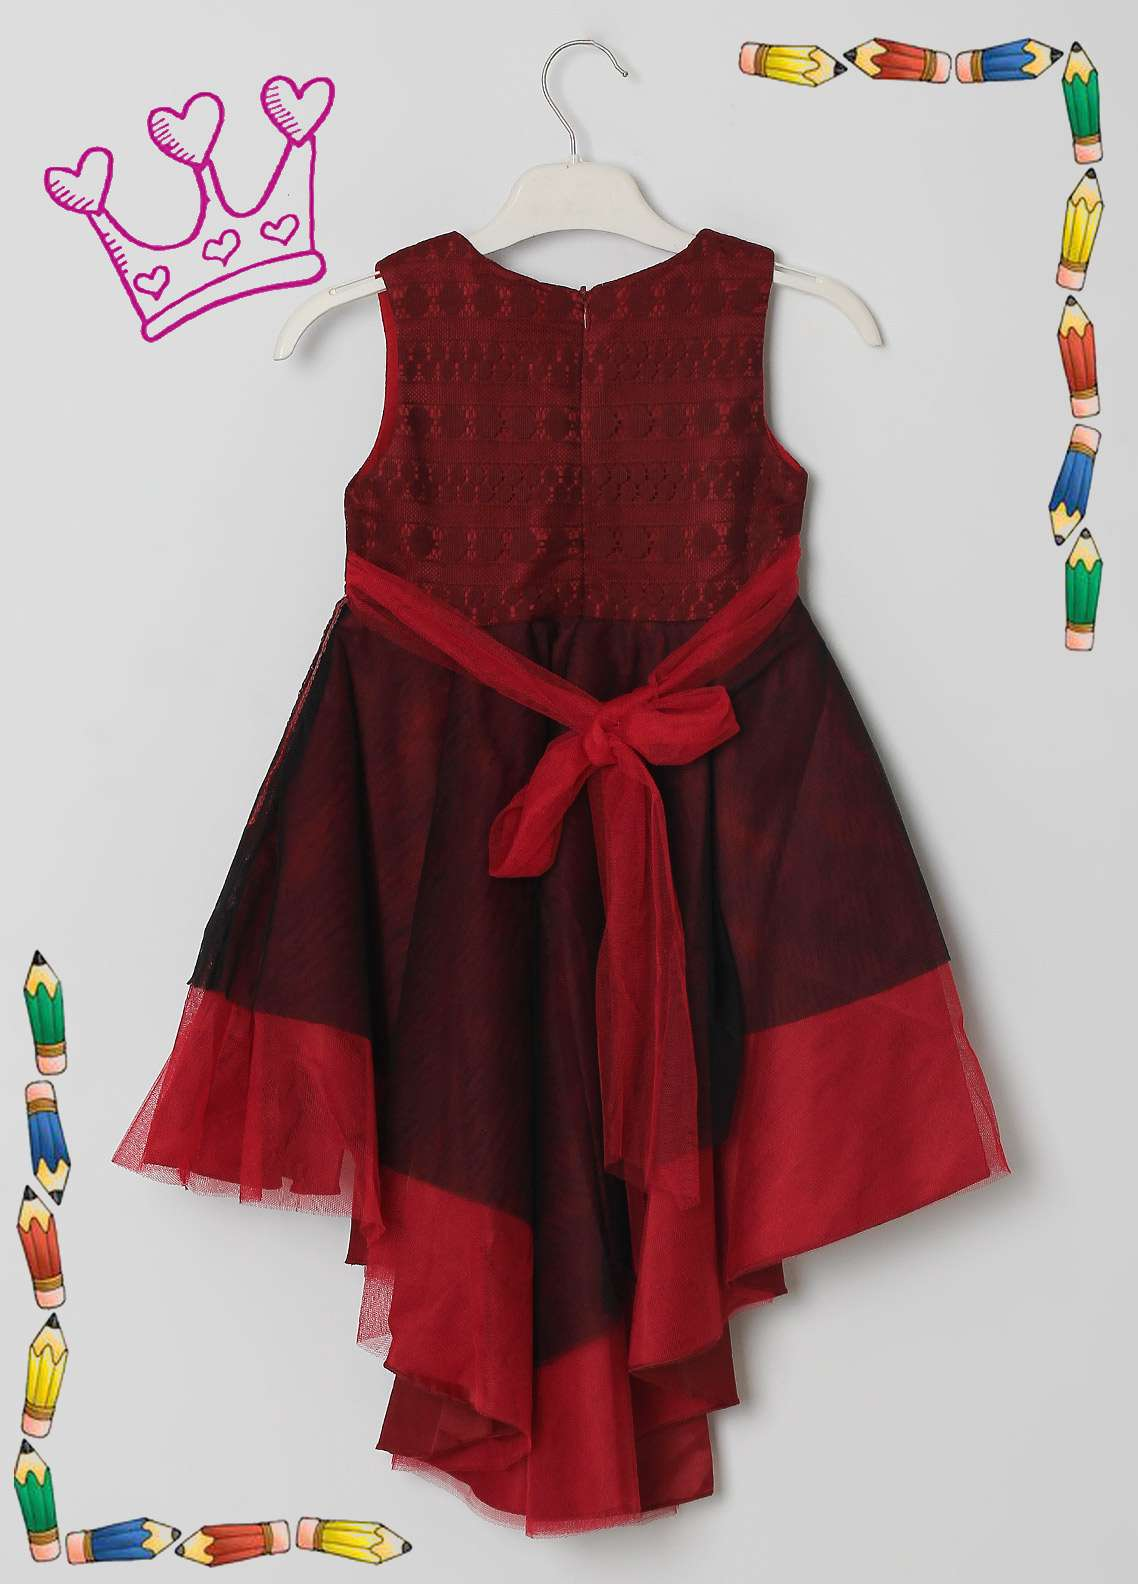 Sanaulla Exclusive Range Cotton Net Fancy Frocks for Girls -  5531 Maroon